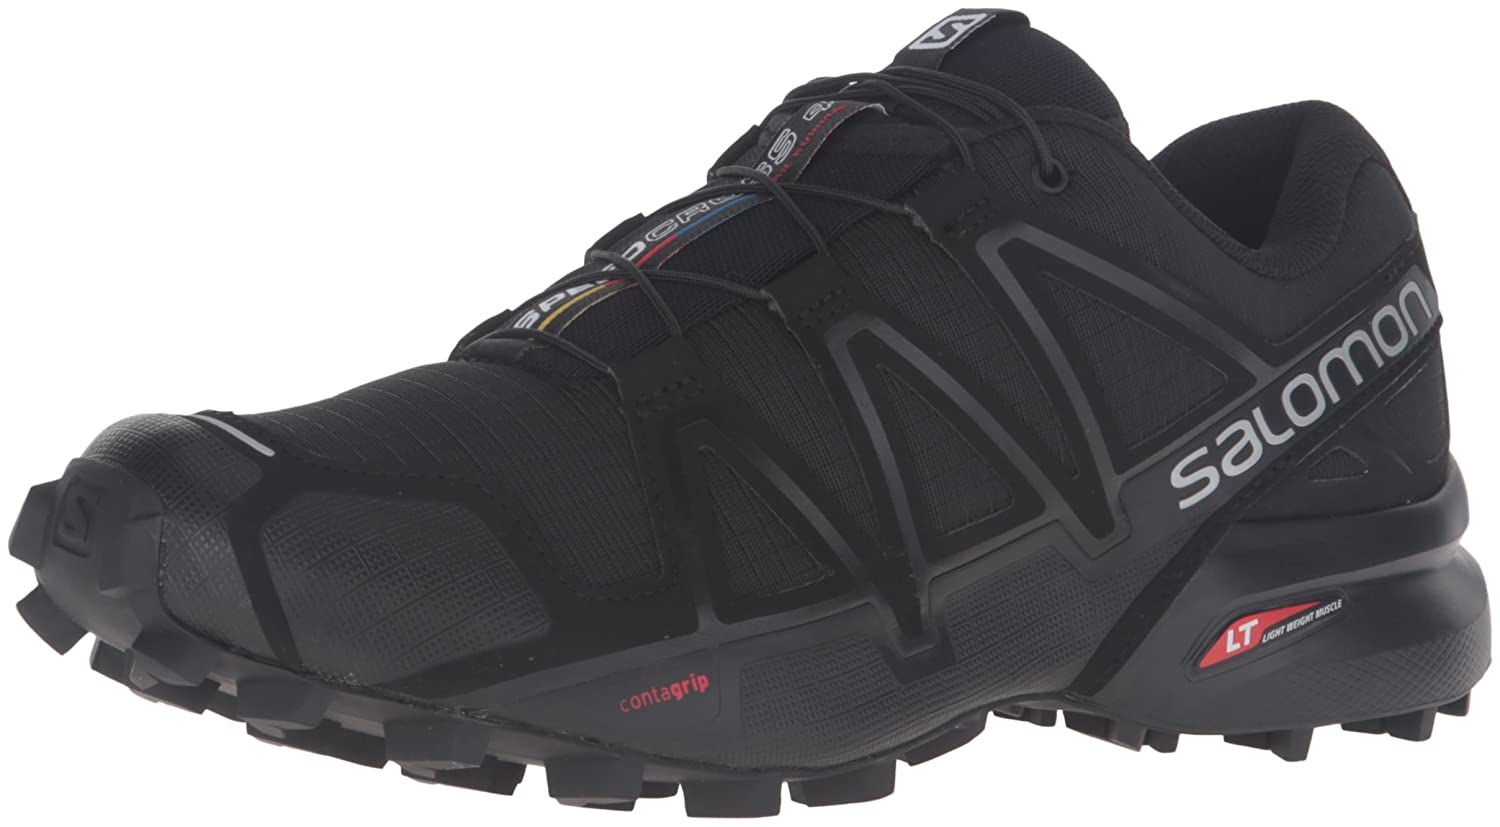 Salomon Women's Speedcross 4 W Trail Runner B017SQZW7O 8.5 M US|Black/Black/Black Metallic